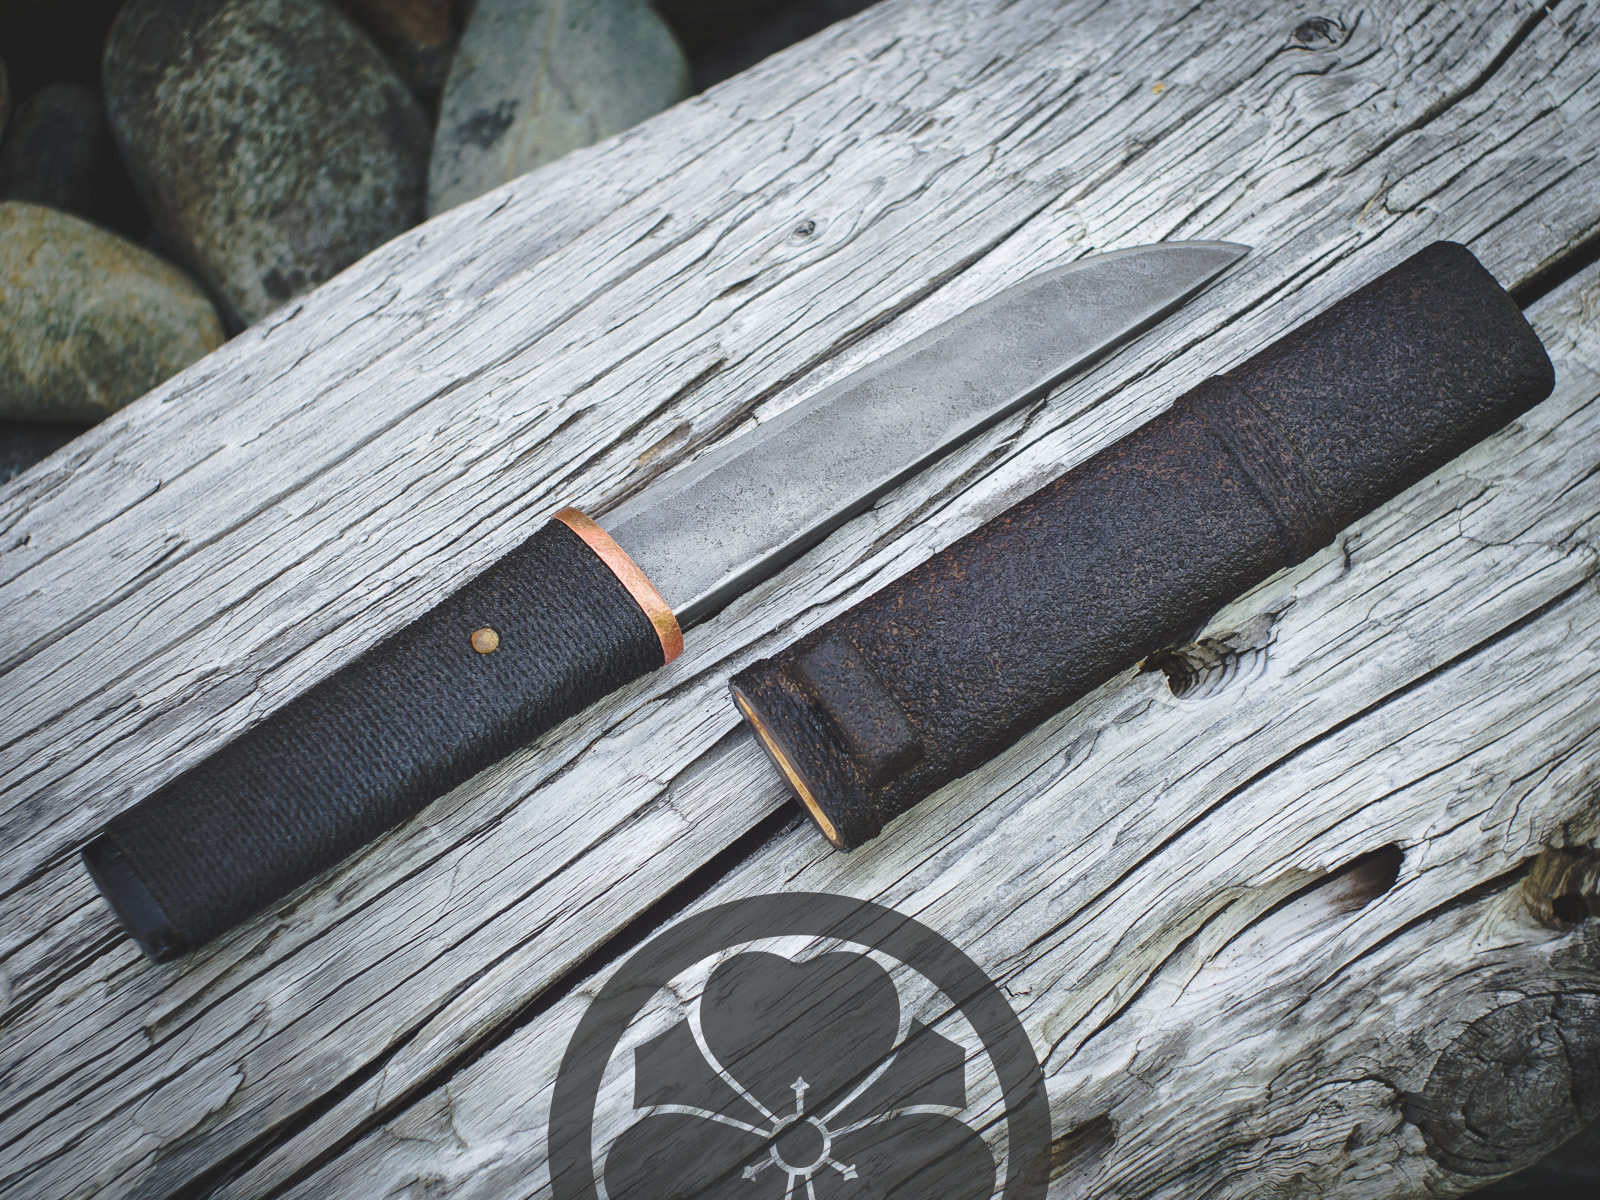 Island Blacksmith: Charcoal forged knives reclaimed from harrow teeth.